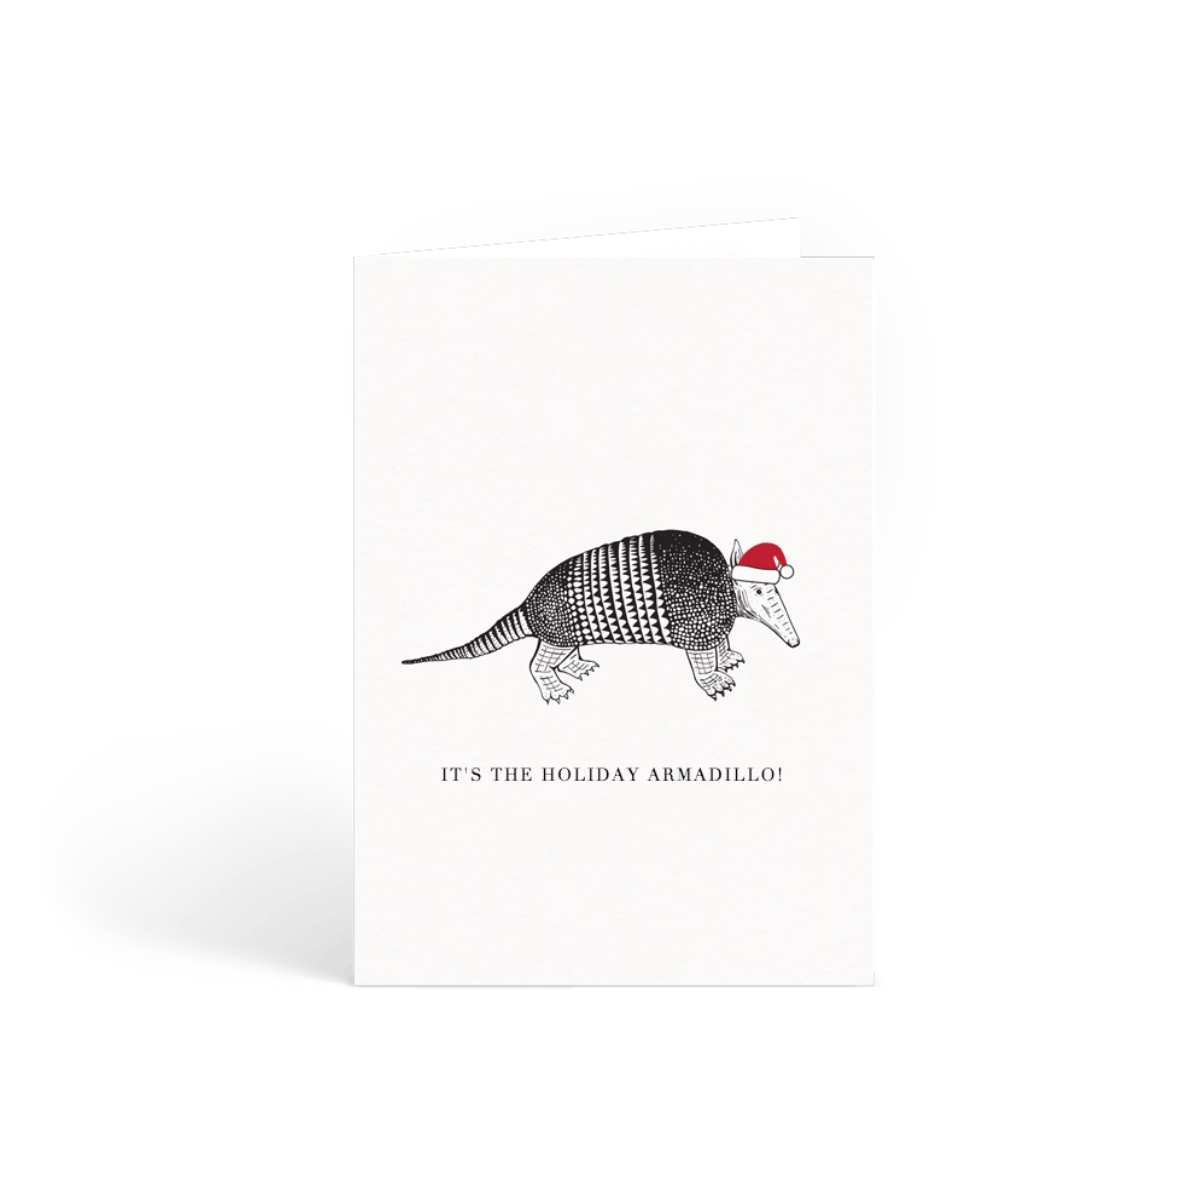 Https%3a%2f%2fwww.papier.com%2fproduct image%2f12466%2f2%2fchristmas armadillo 3139 front 1476958728.png?ixlib=rb 1.1